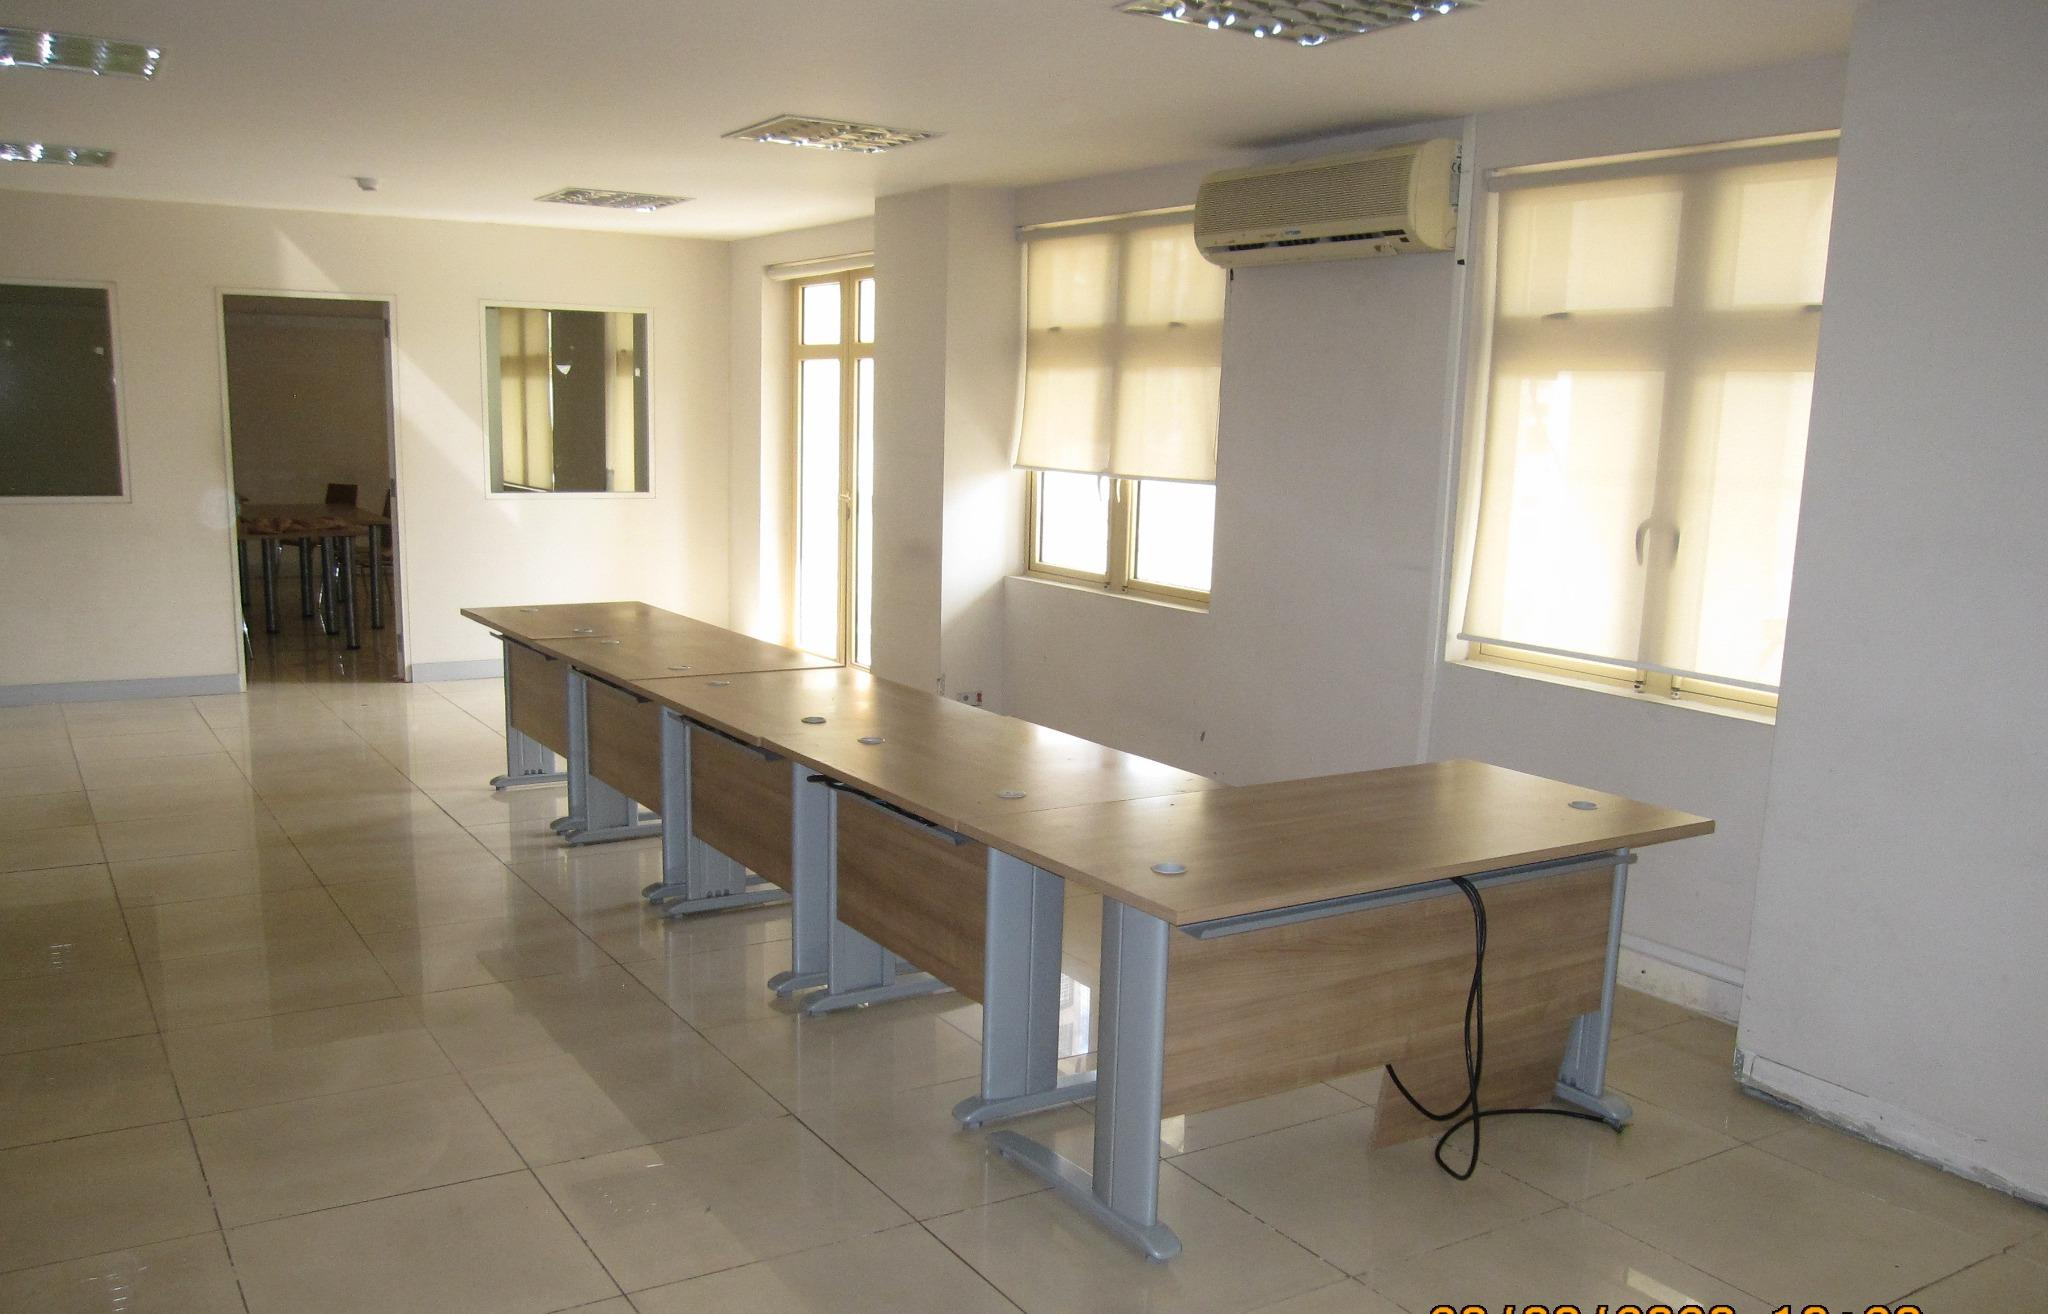 To rent – Air-conditioned office of 278 m2 in Port-Louis, located on the 5th floor (with lift).